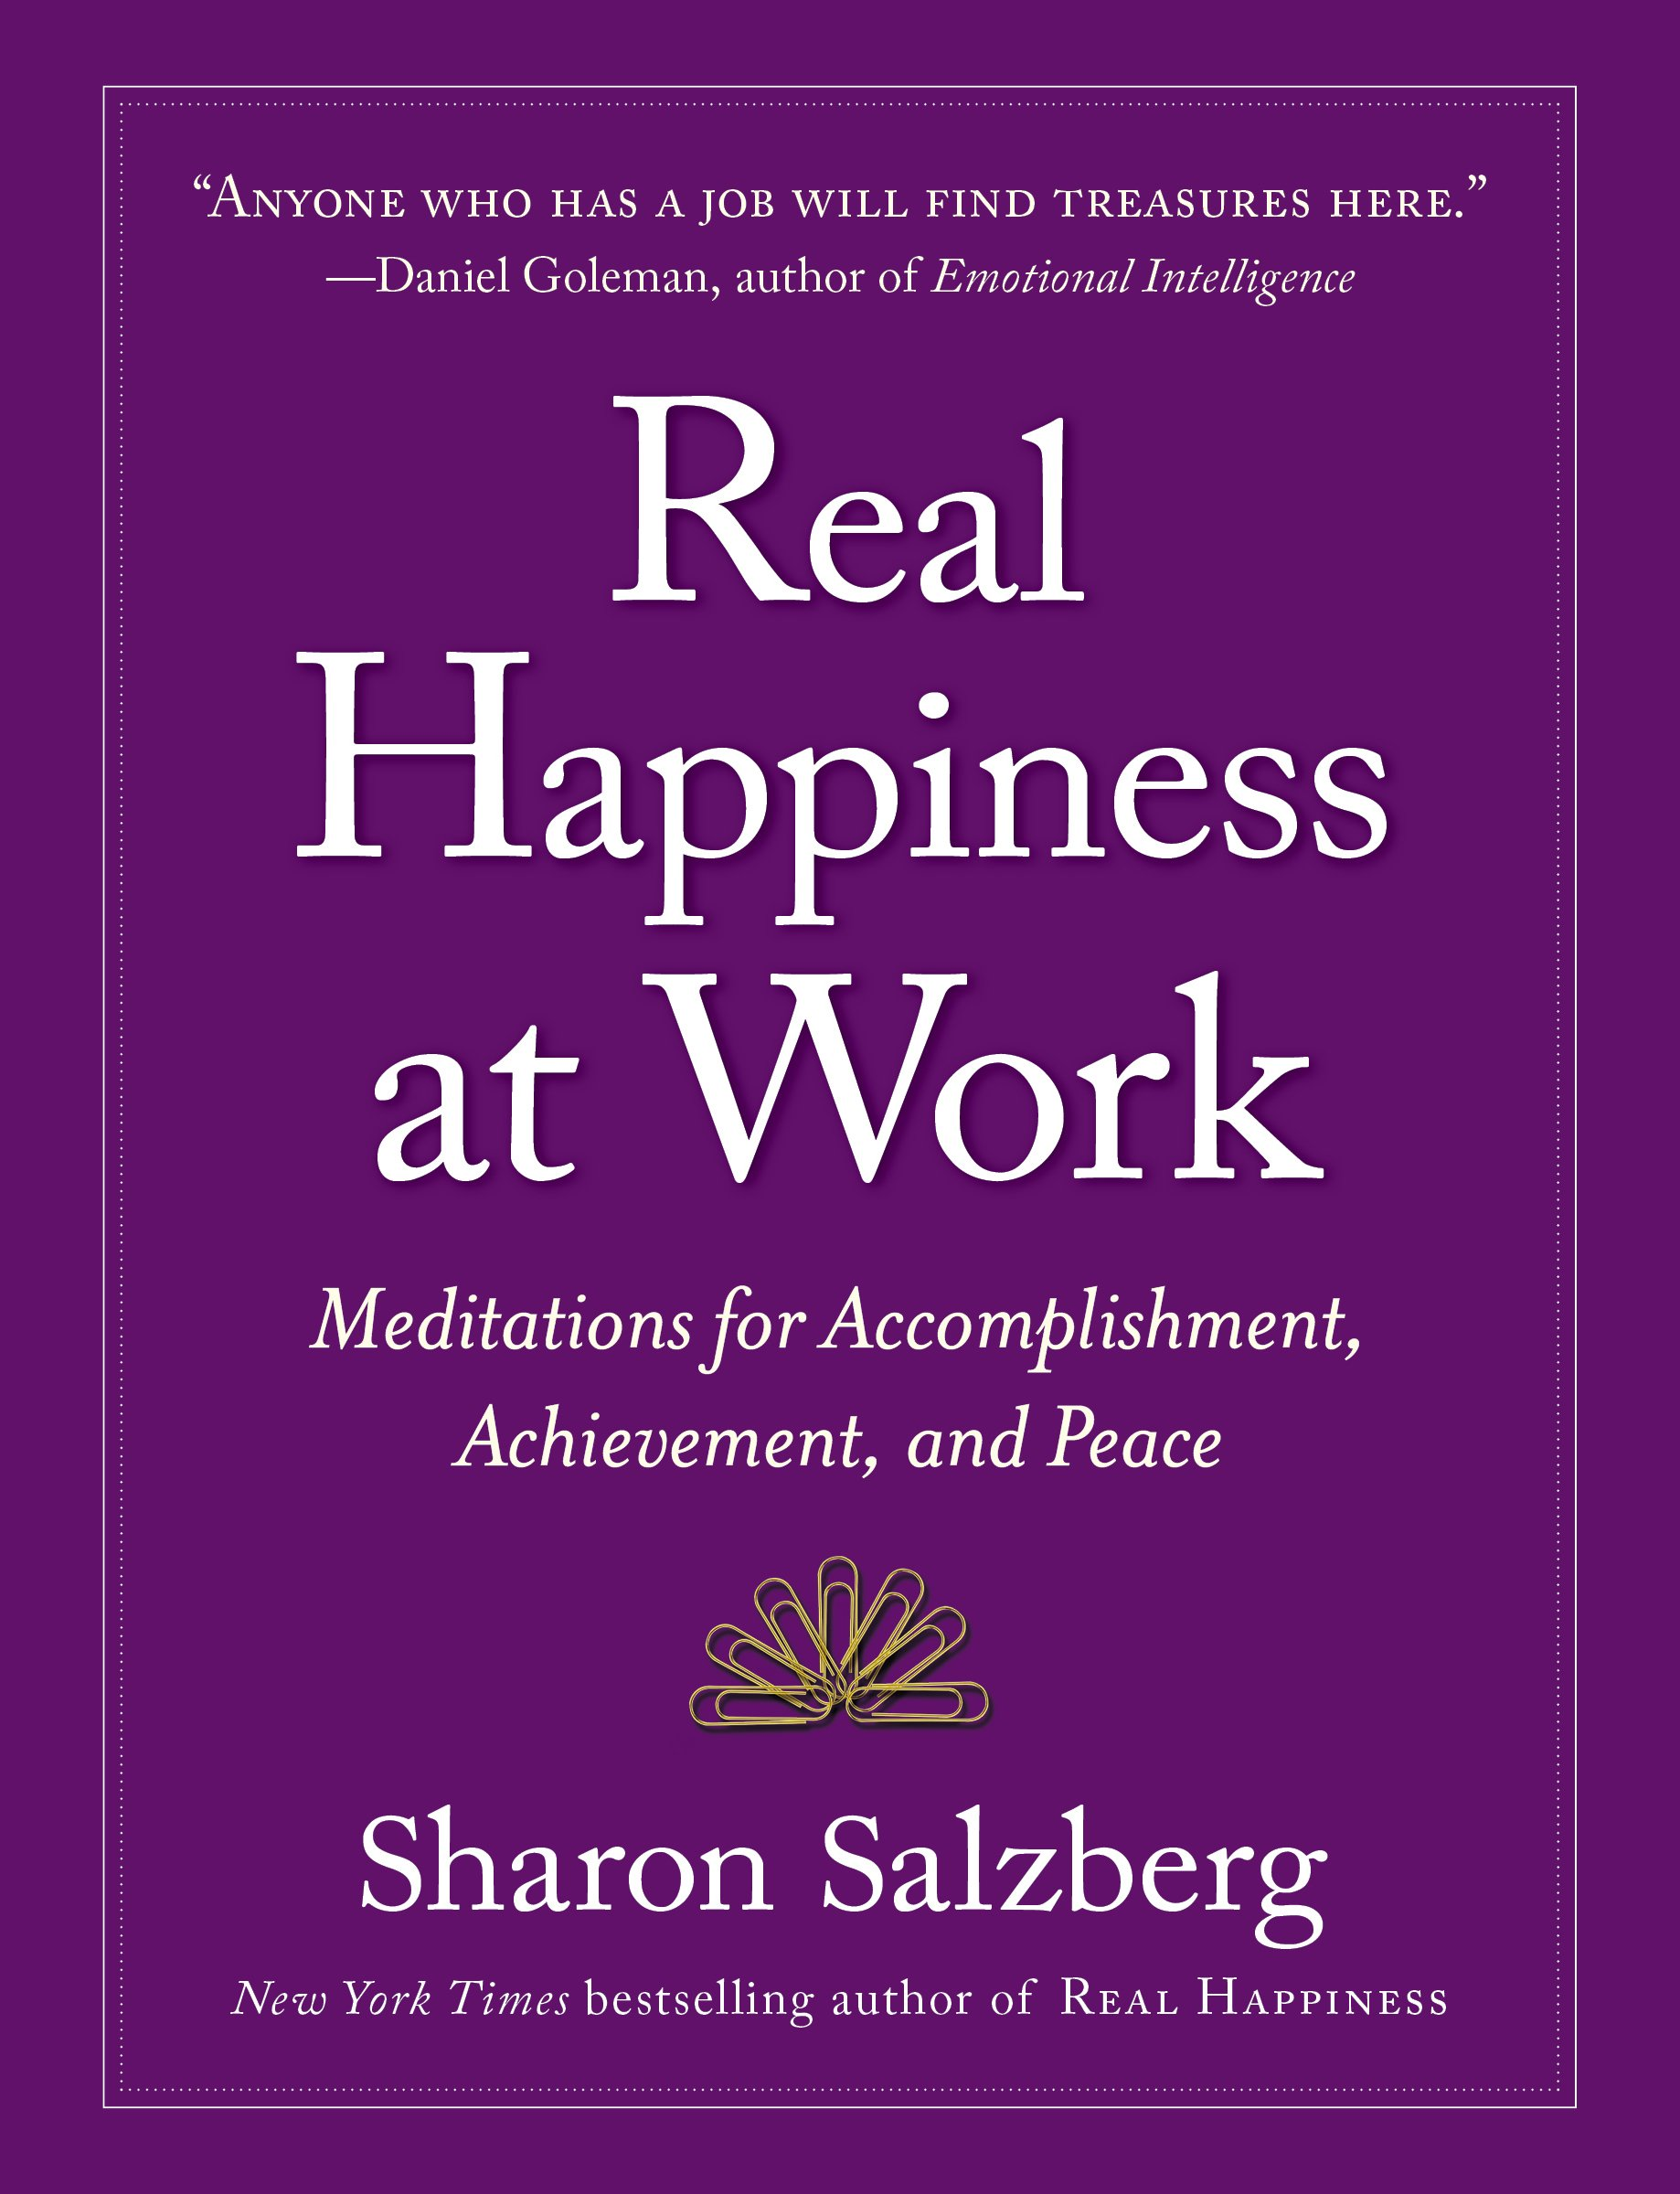 real happiness at work meditations for accomplishment real happiness at work meditations for accomplishment achievement and peace sharon salzberg 0884518752862 com books